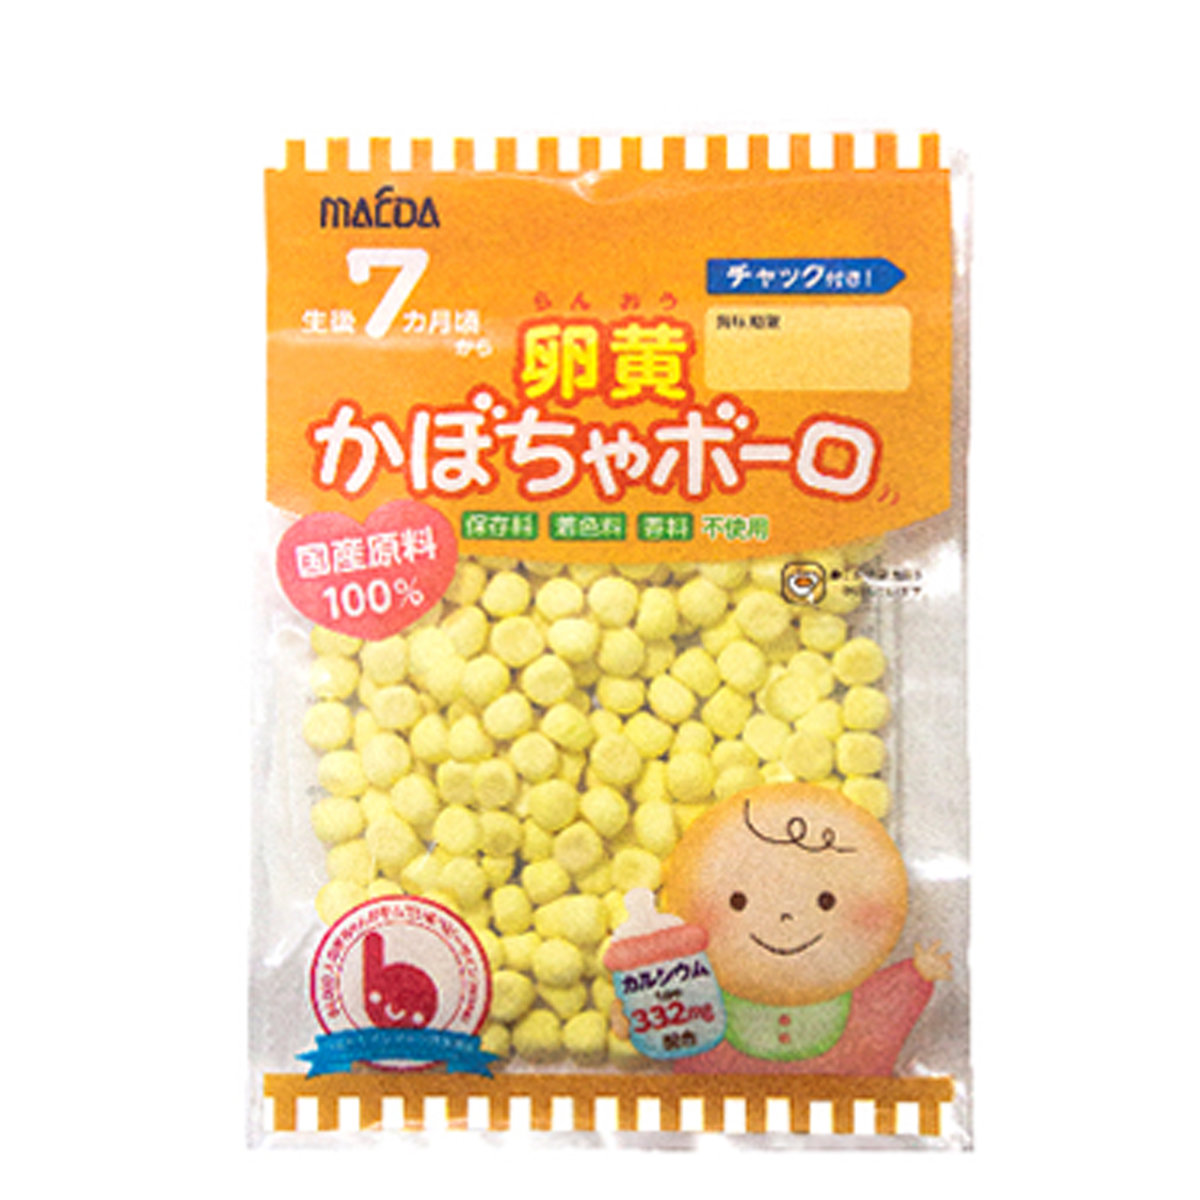 Maeda baby egg puffs for 7 month +